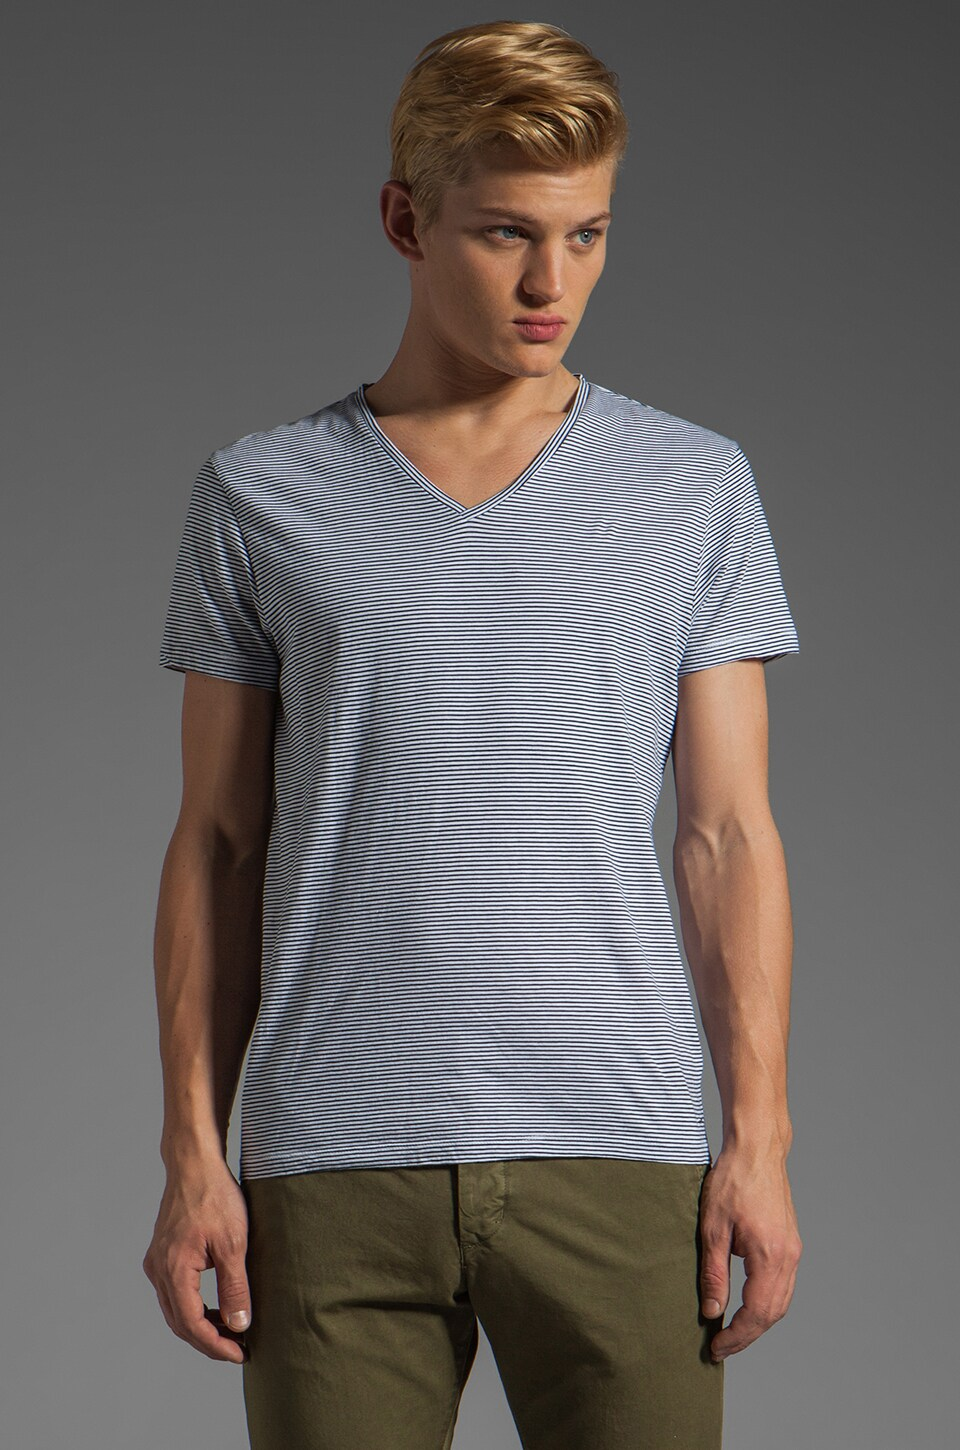 Scotch & Soda 2n1 V Neck Top in Navy